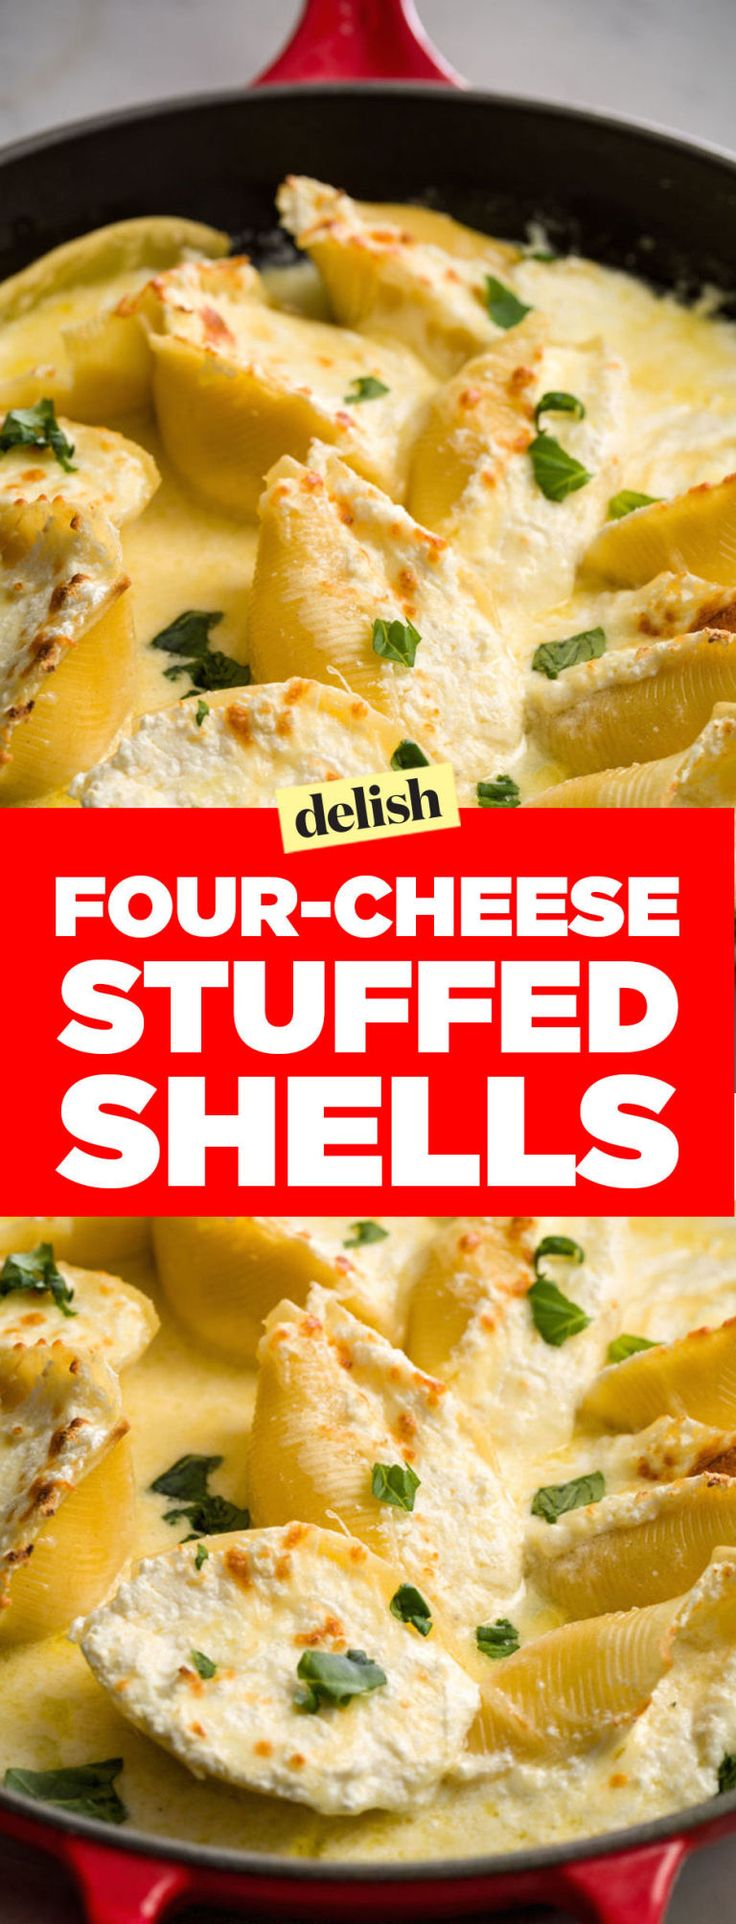 Our Four-Cheese Stuffed Shells Are Beautifully Basic